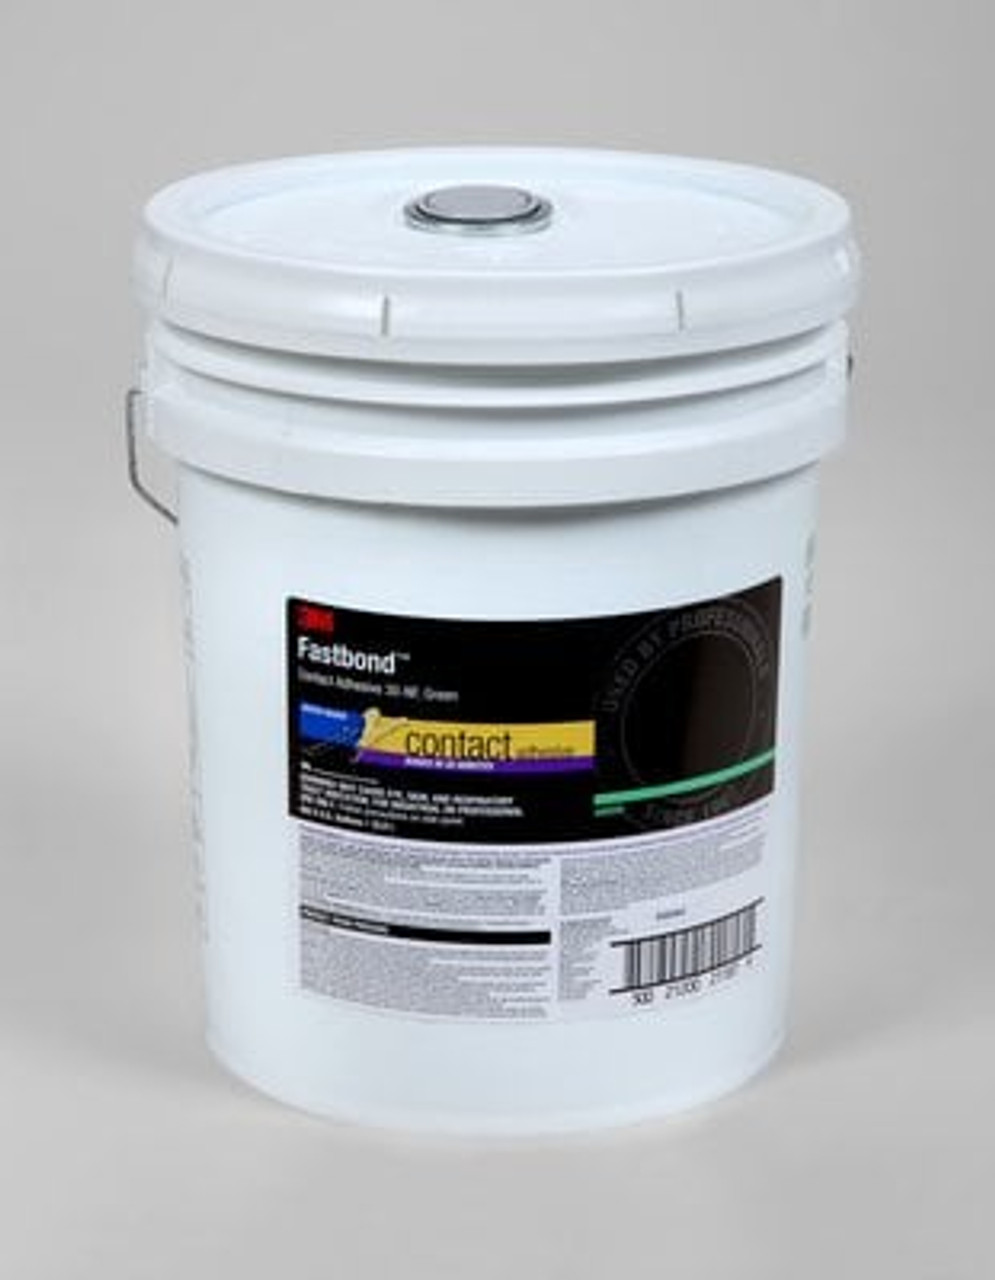 3M™ Fastbond™ Contact Adhesive 30NF, Green, 5 Gallon Drum